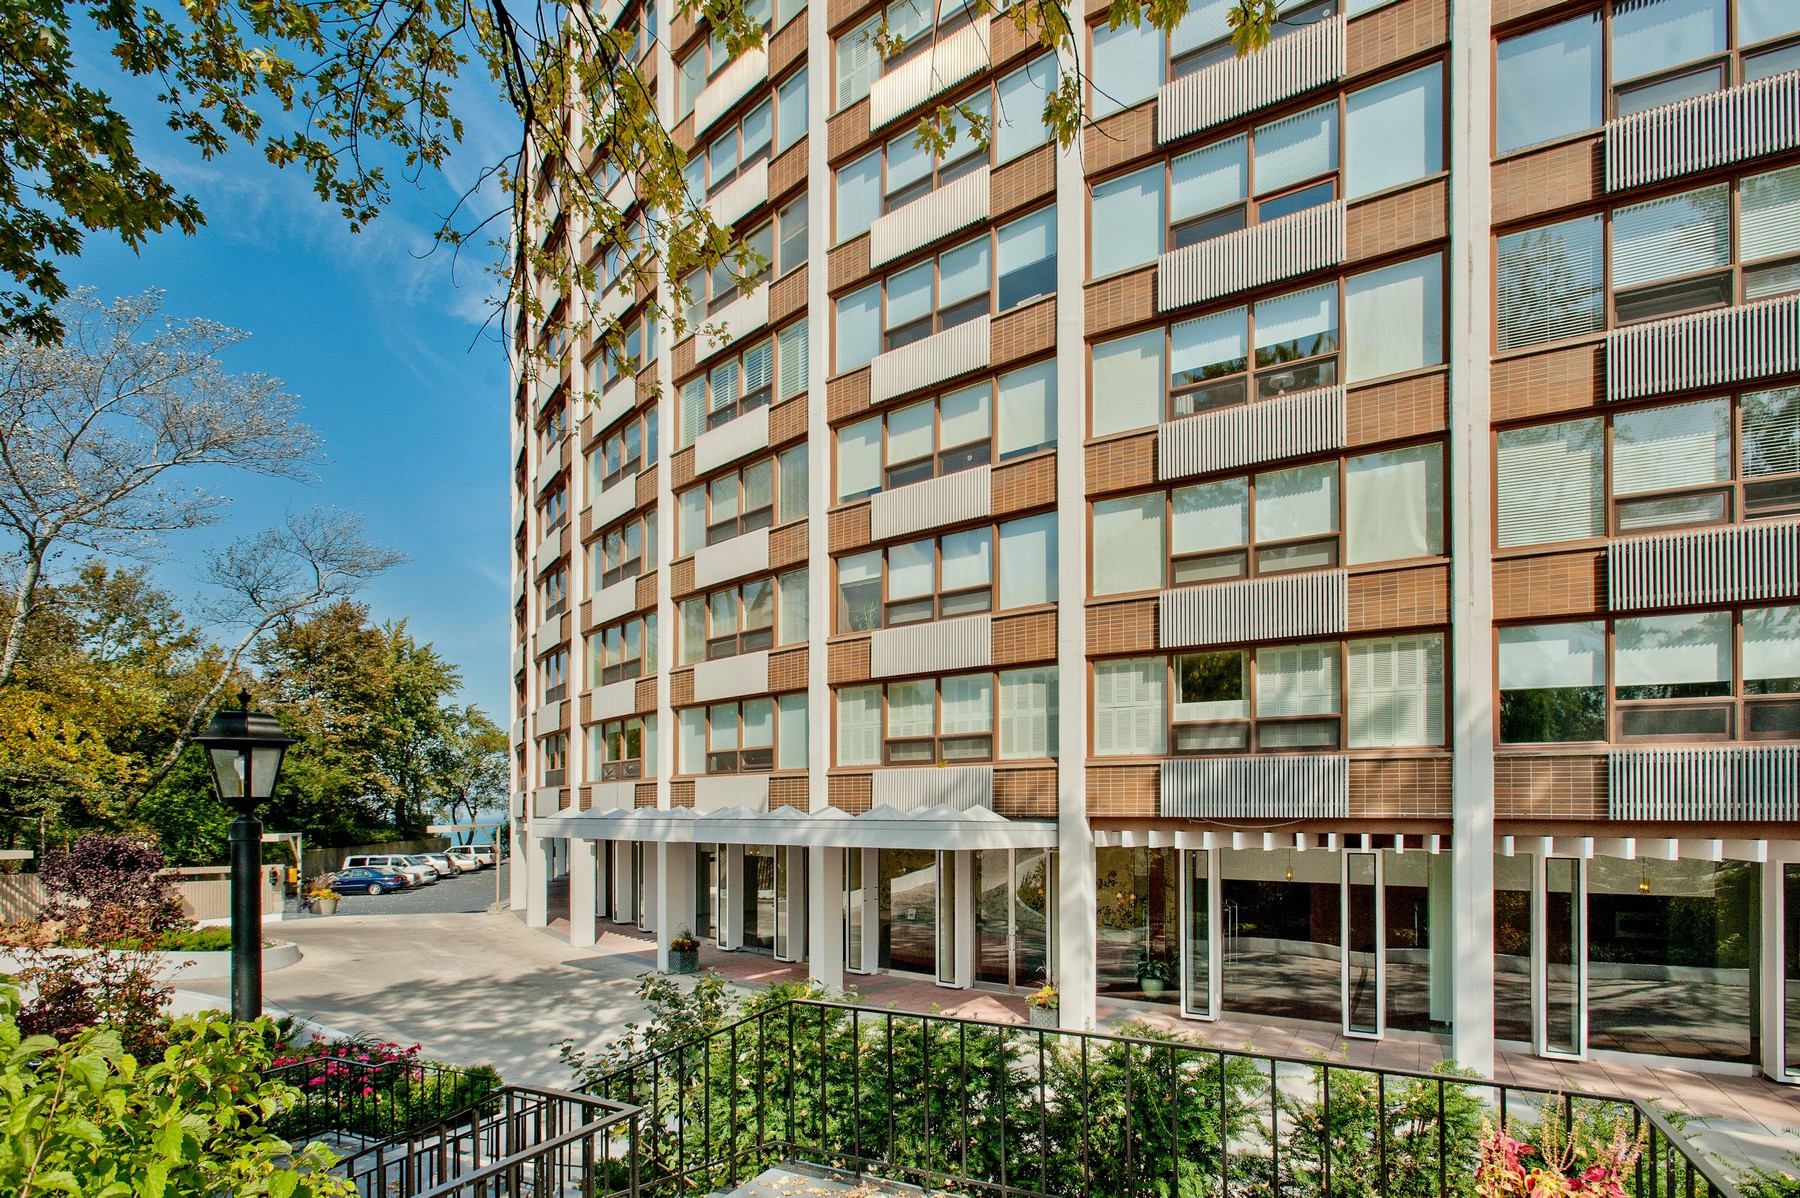 Property For Sale at Stunning Unit In Architectual Co-Op Building